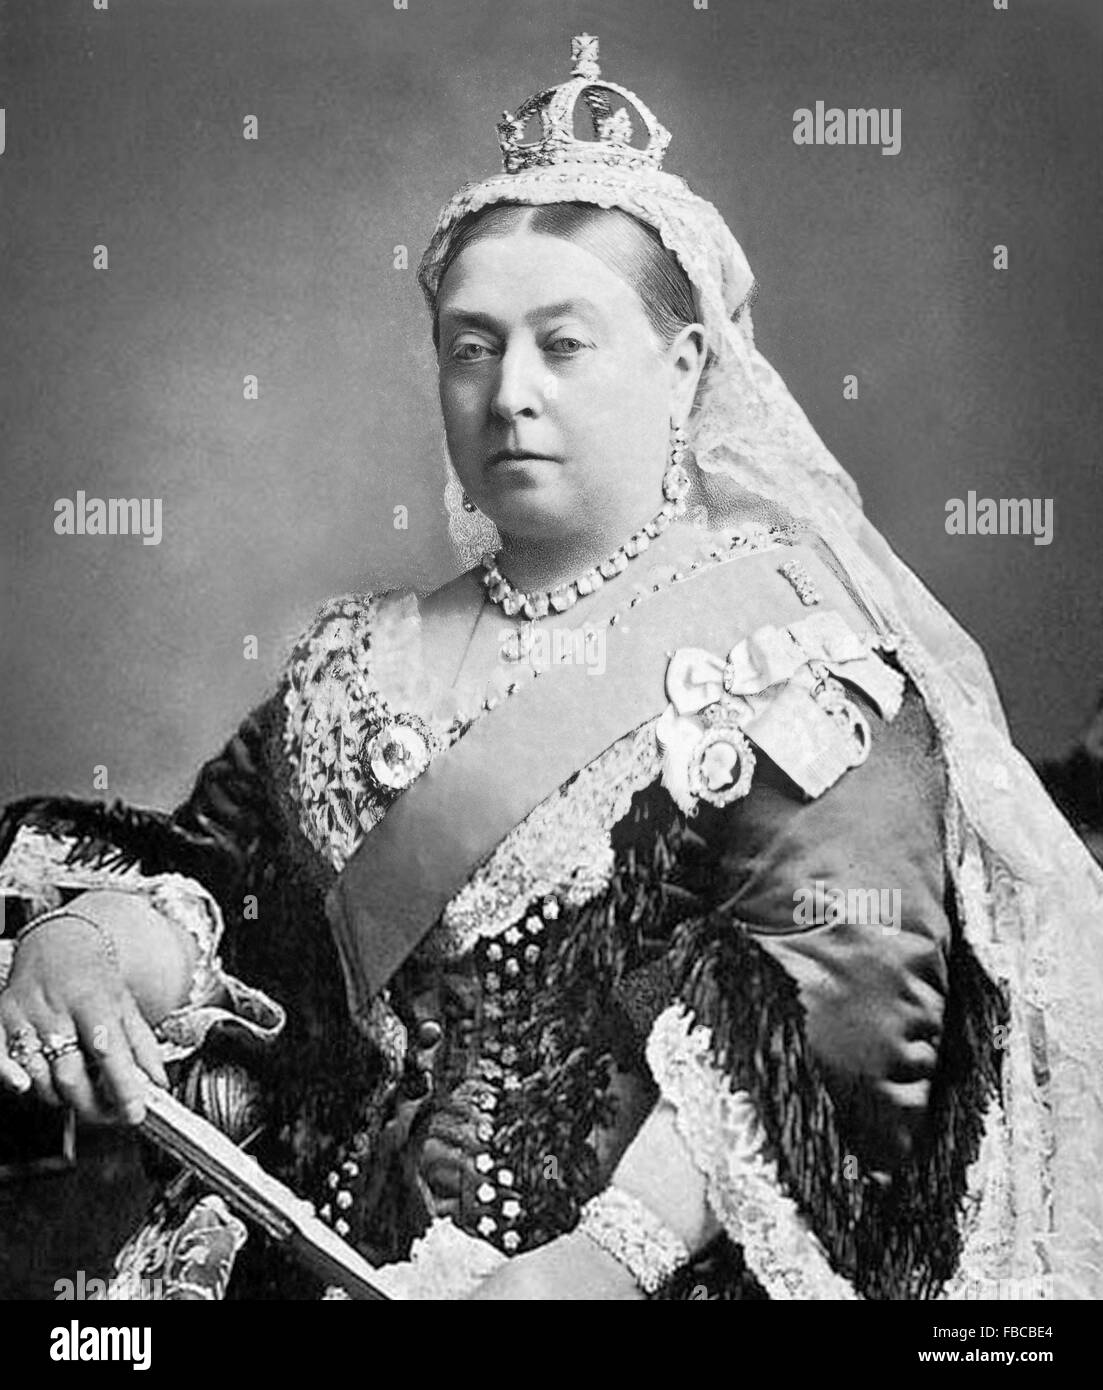 Queen Victoria. Alexander Bassano's photograph of Queen Victoria used to commemorate her Golden Jubilee in 1887 - Stock Image